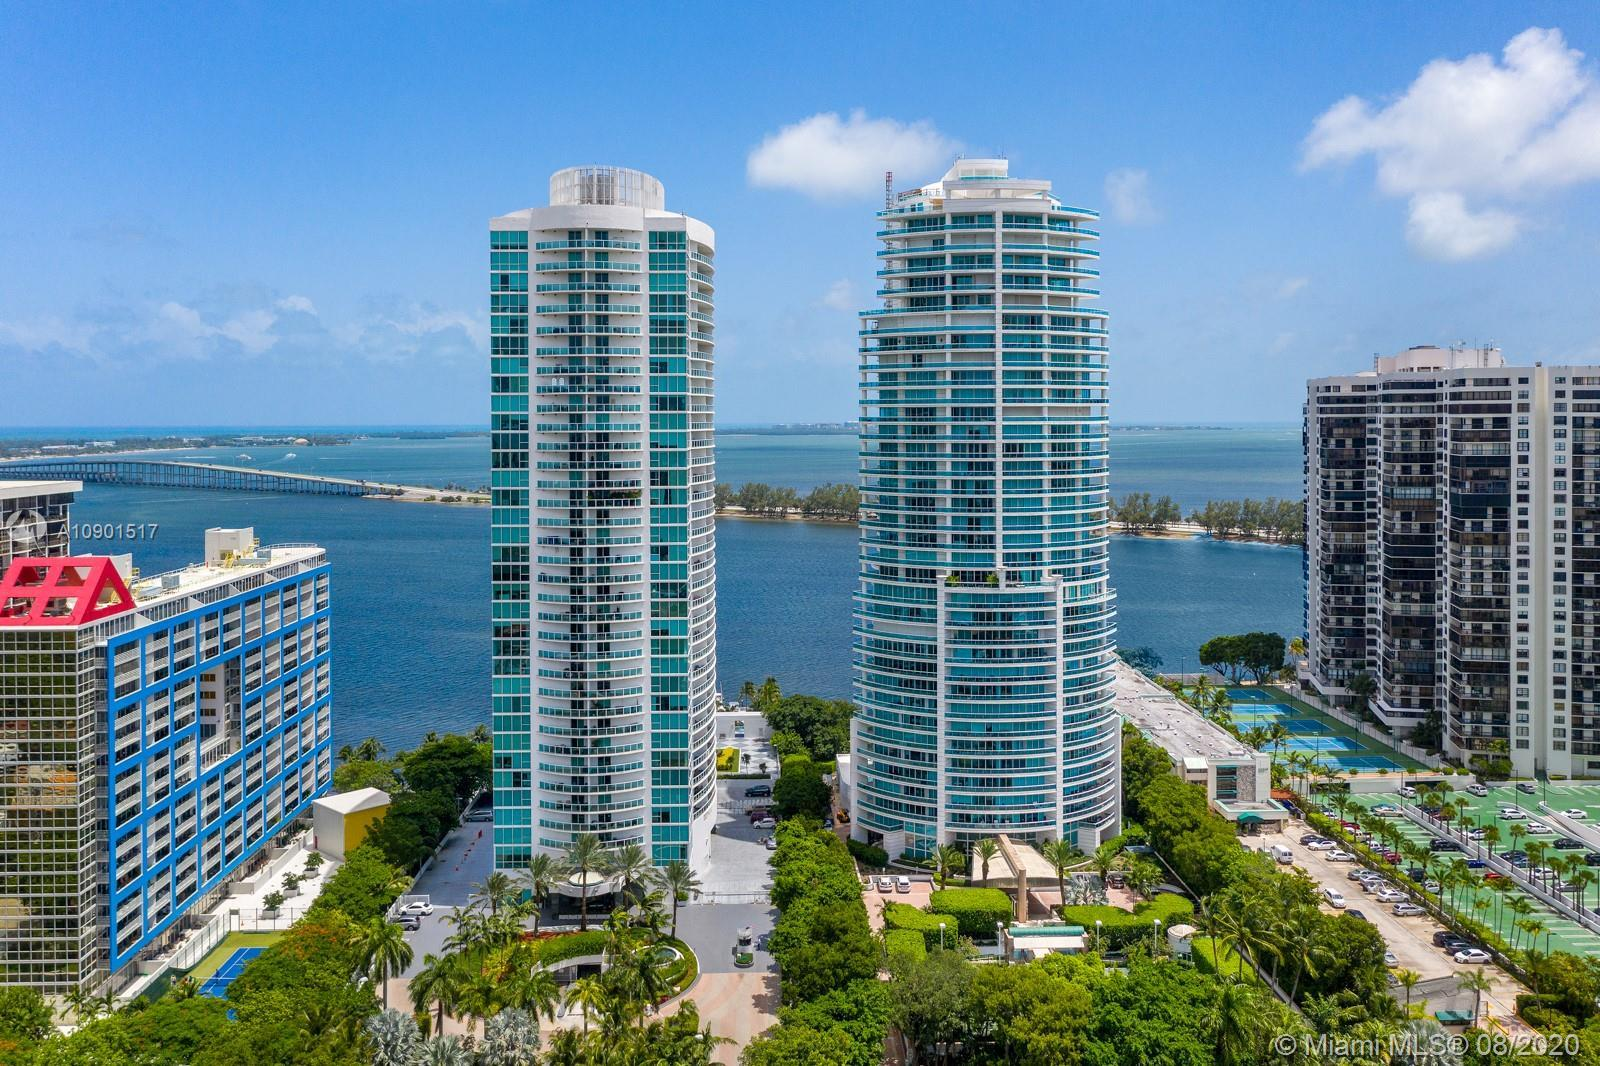 Developed by Ugo Colombo this signature building, located on S Brickell, is minutes away from Coconu